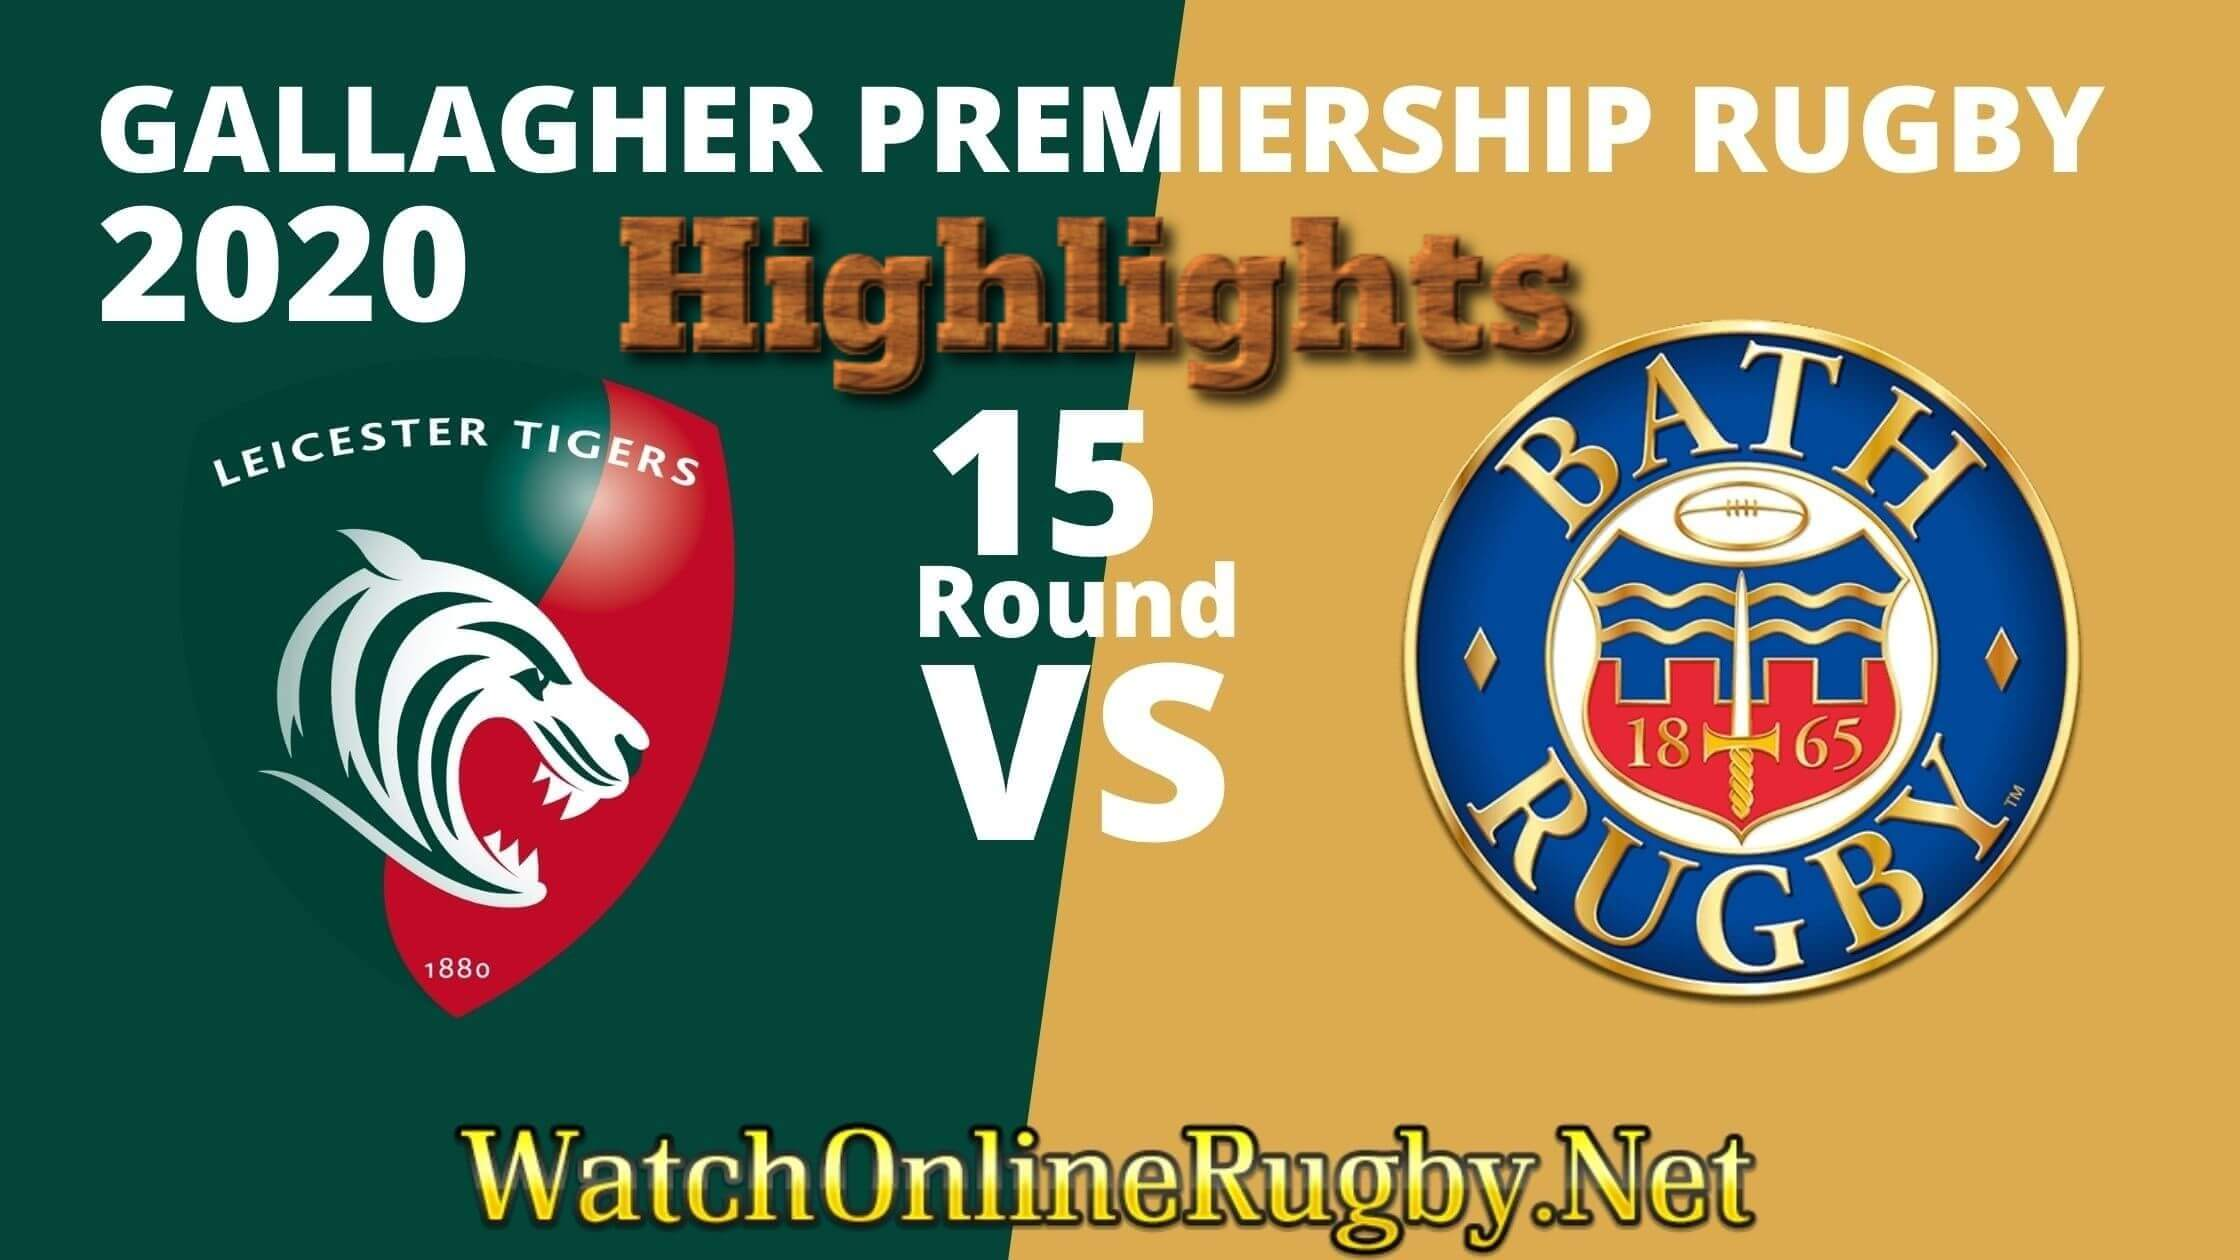 Leicester Tigers Vs Bath Rugby Highlights 2020 Rd 15